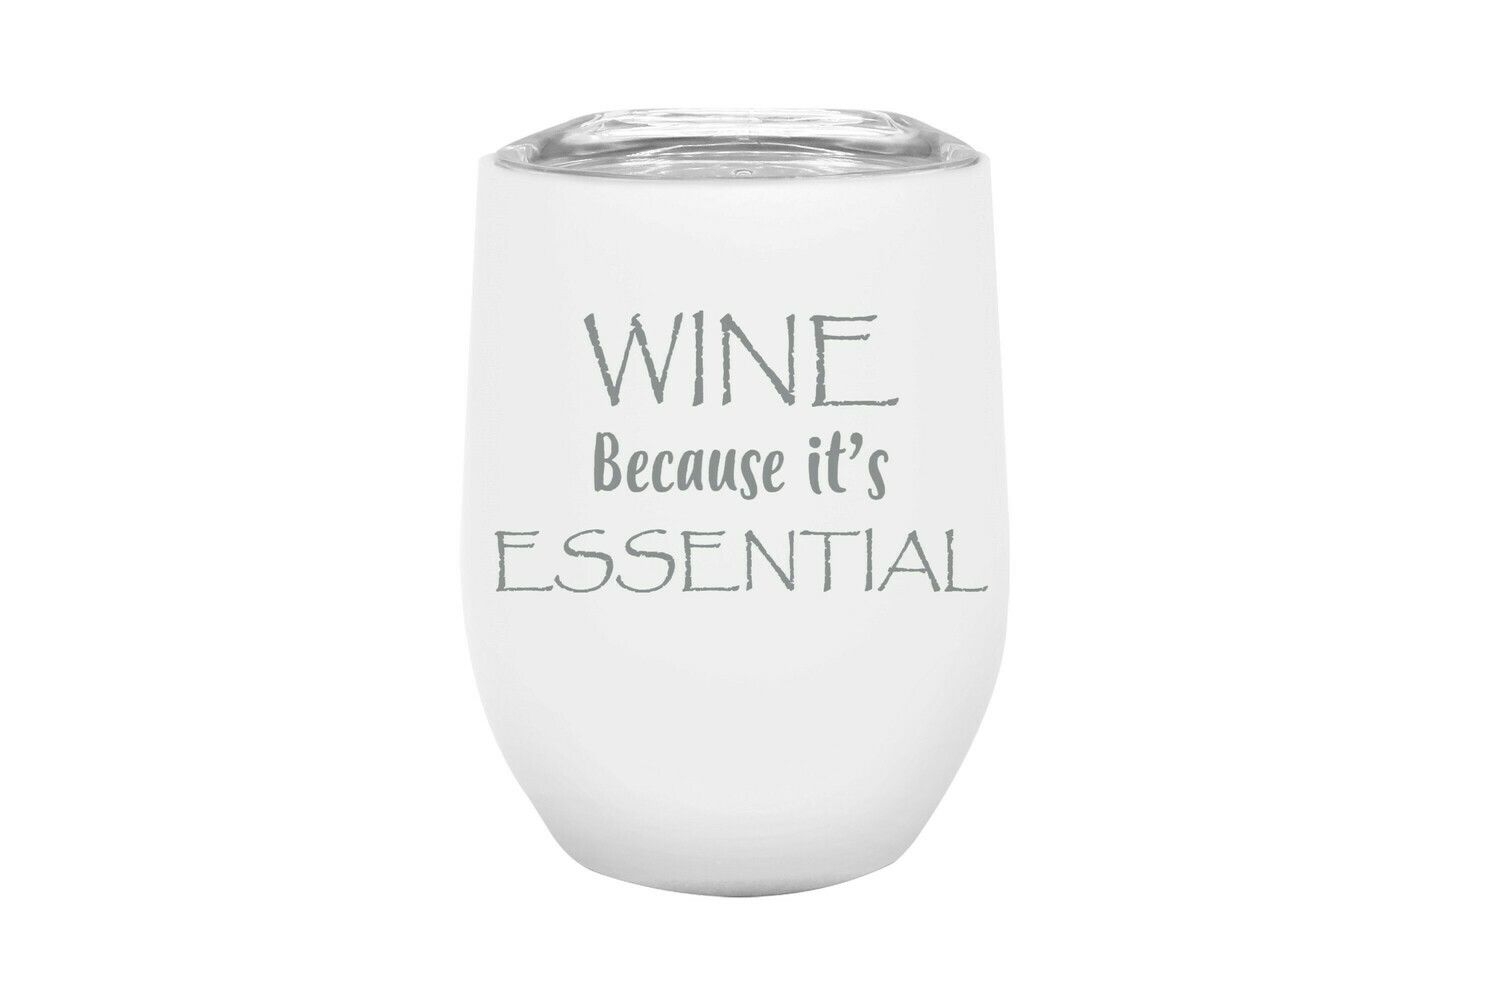 Wine Because it's ESSENTIAL Insulated Tumbler 12 oz